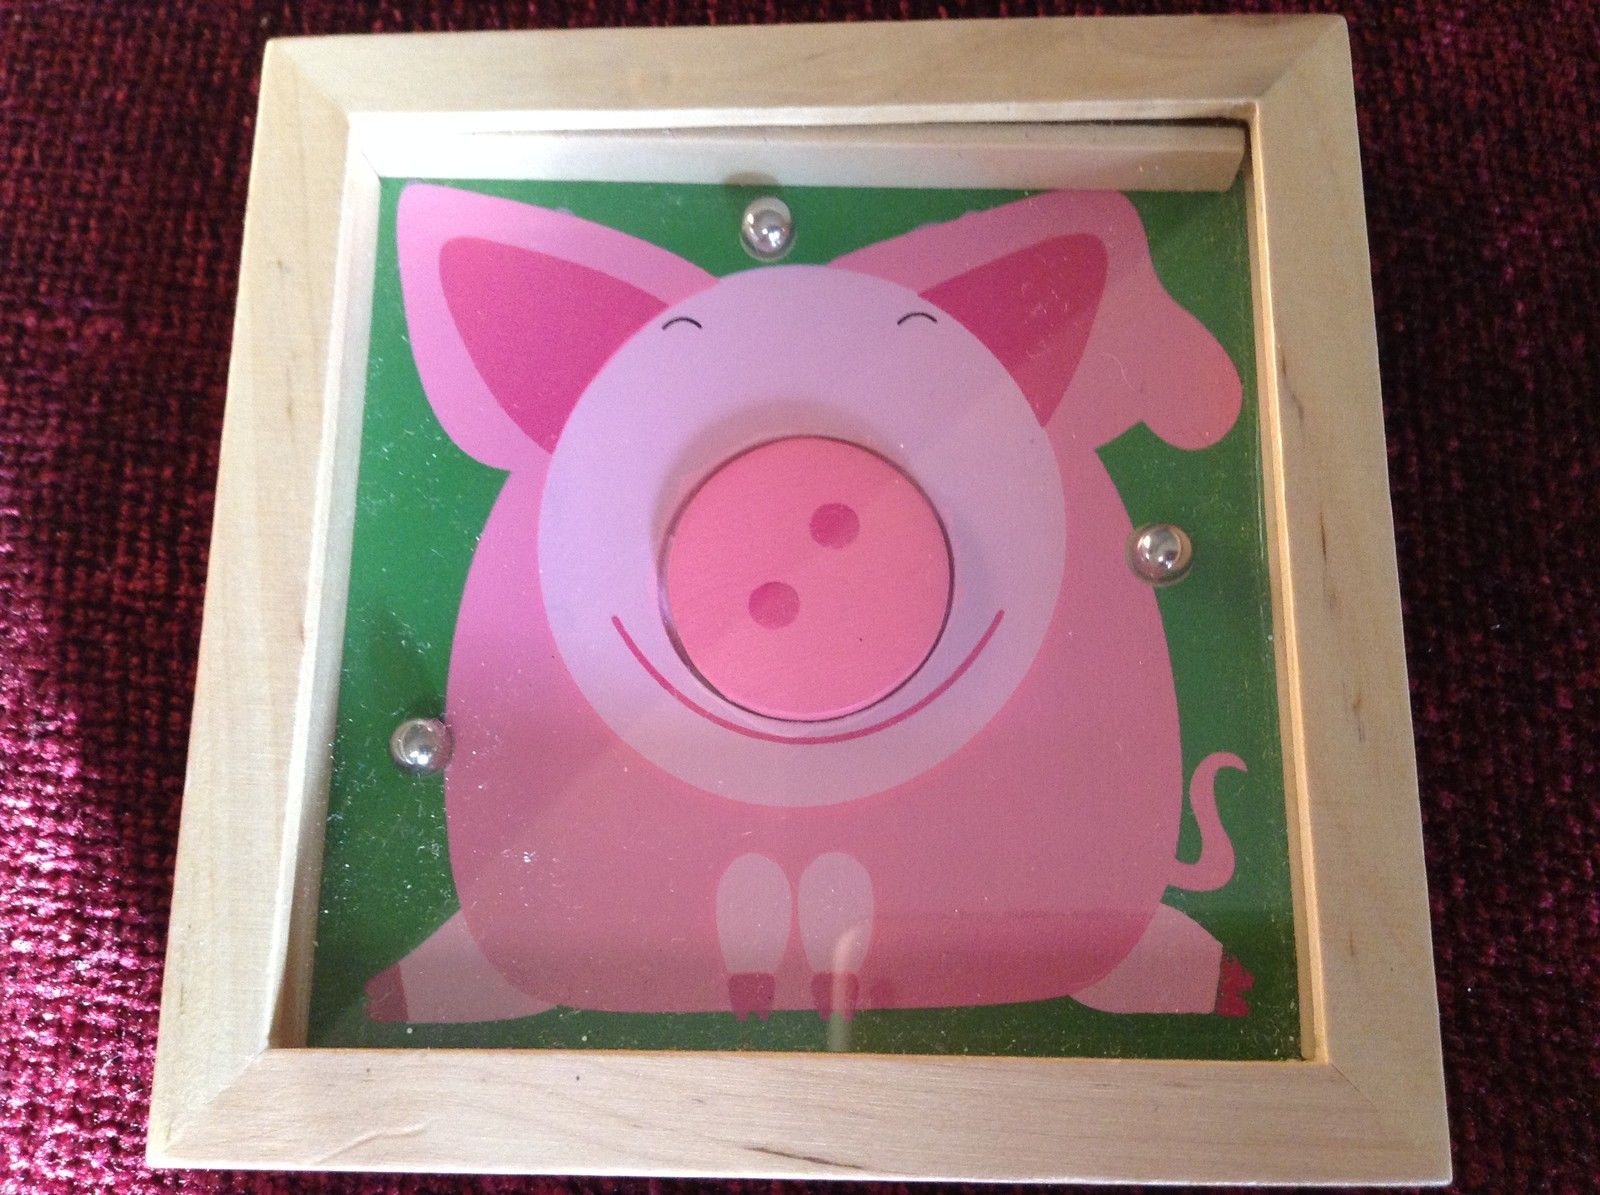 Pig Tip and Tilter Ball Puzzle Collectably Cute Animal Games House of Marbles